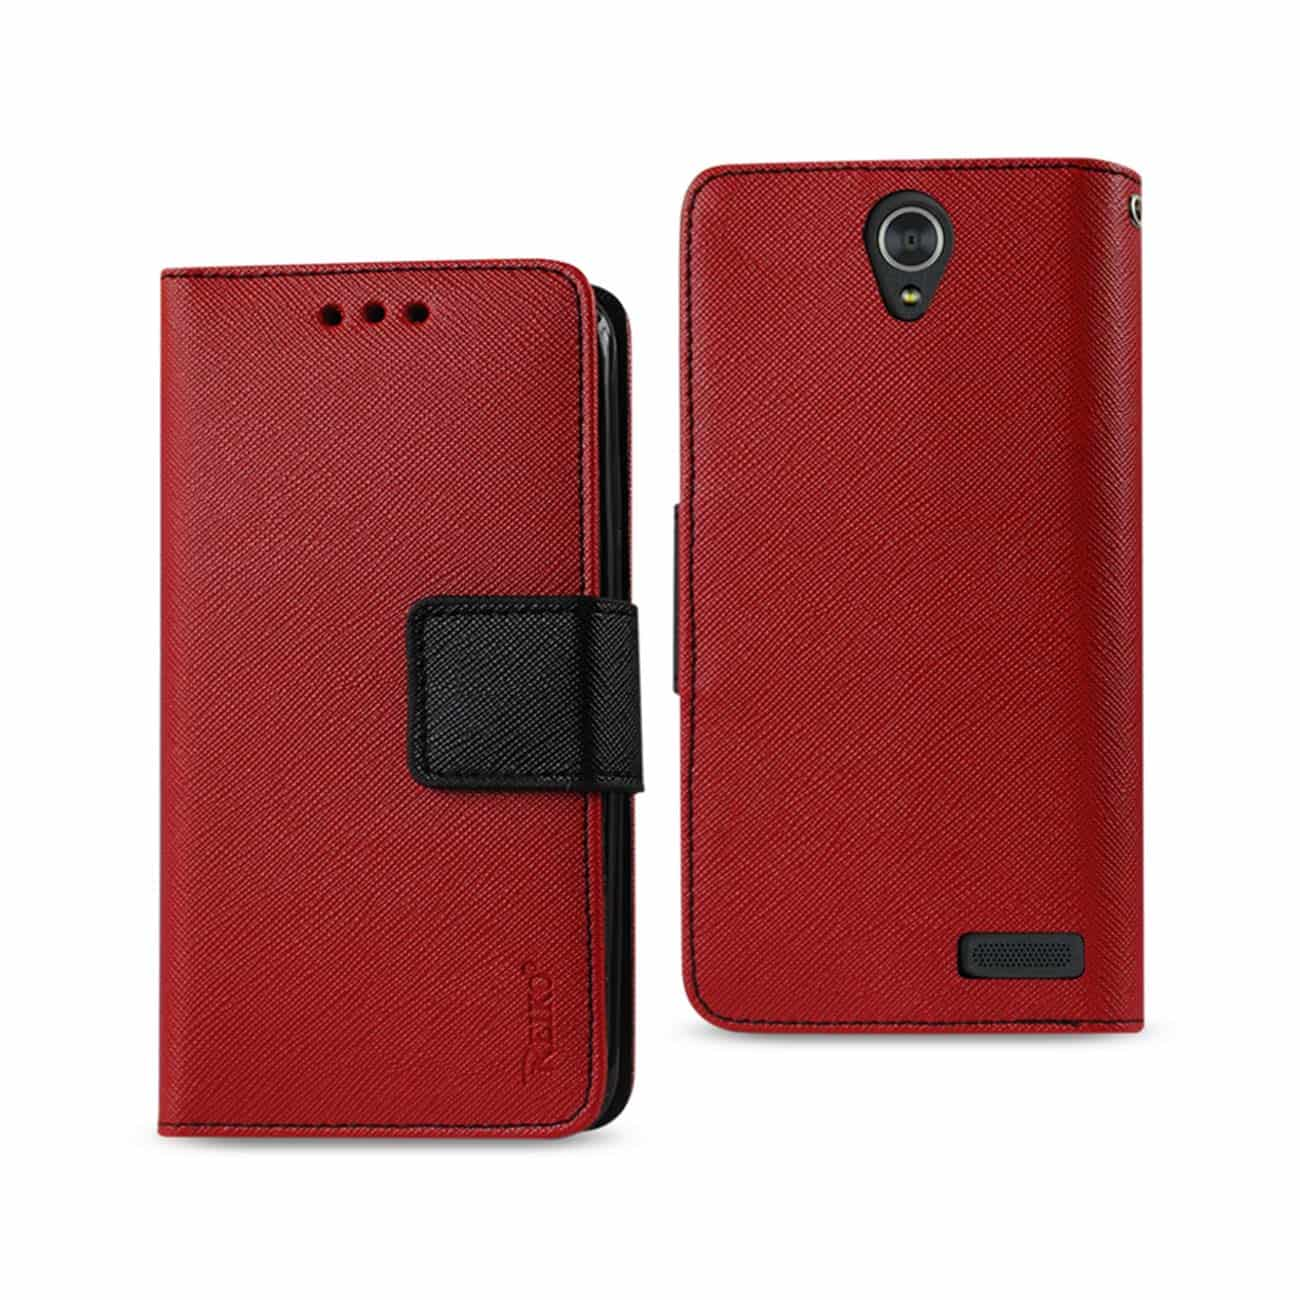 ZTE GRAND X3 3-IN-1 WALLET CASE IN RED